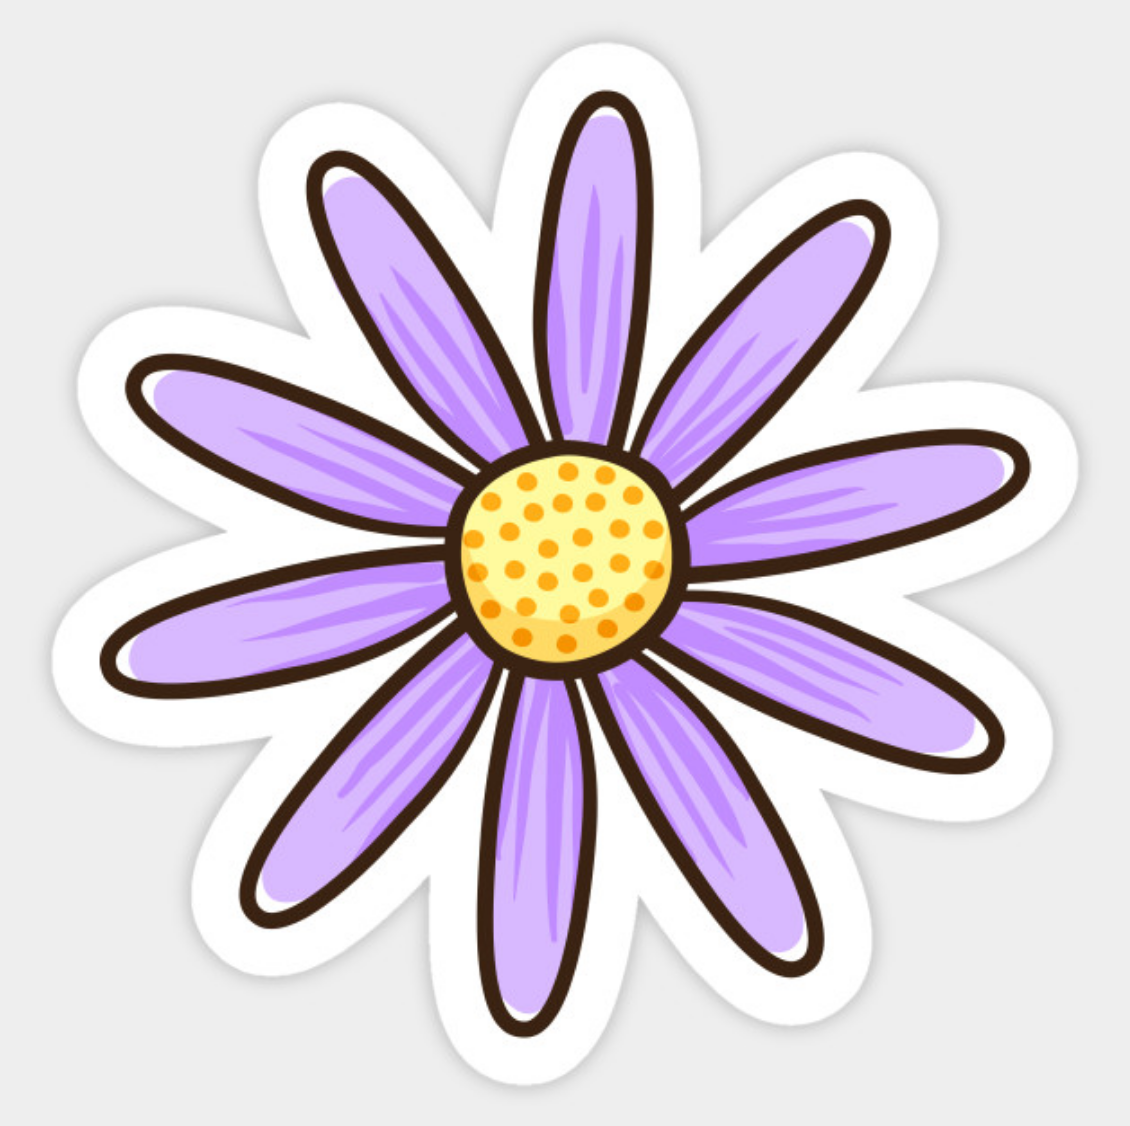 Purple daisy flower sticker sticker featuring a cartoon